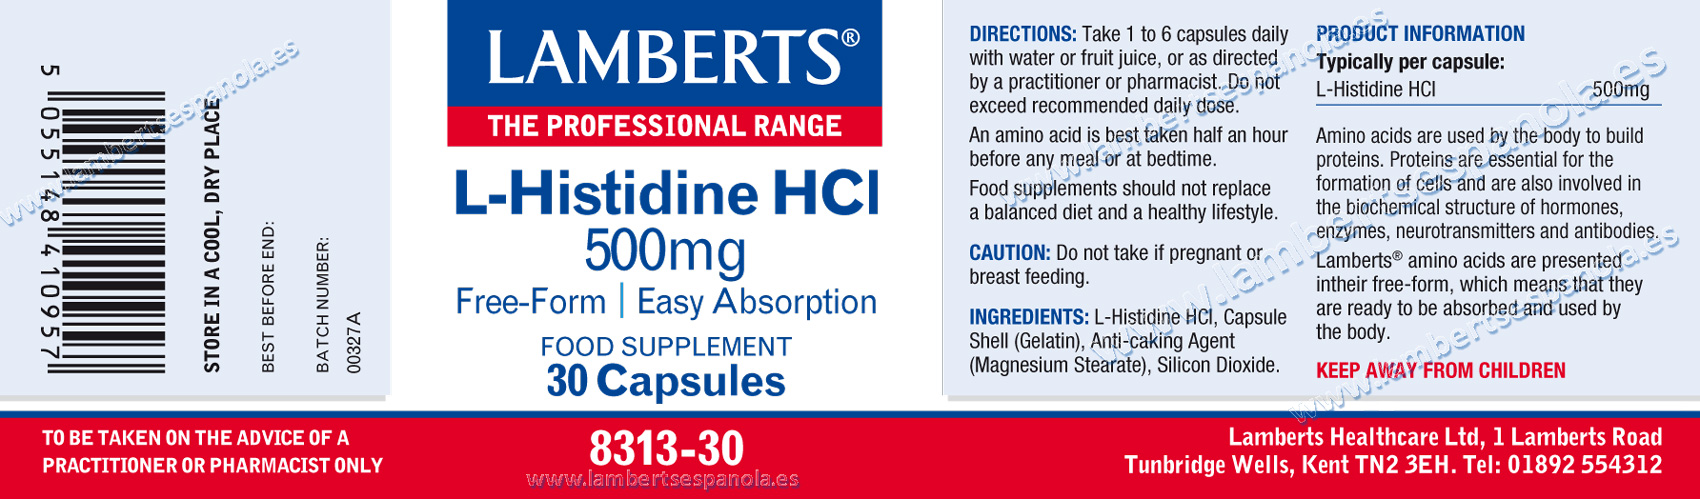 Histidine HCL properties and composition. Lamberts